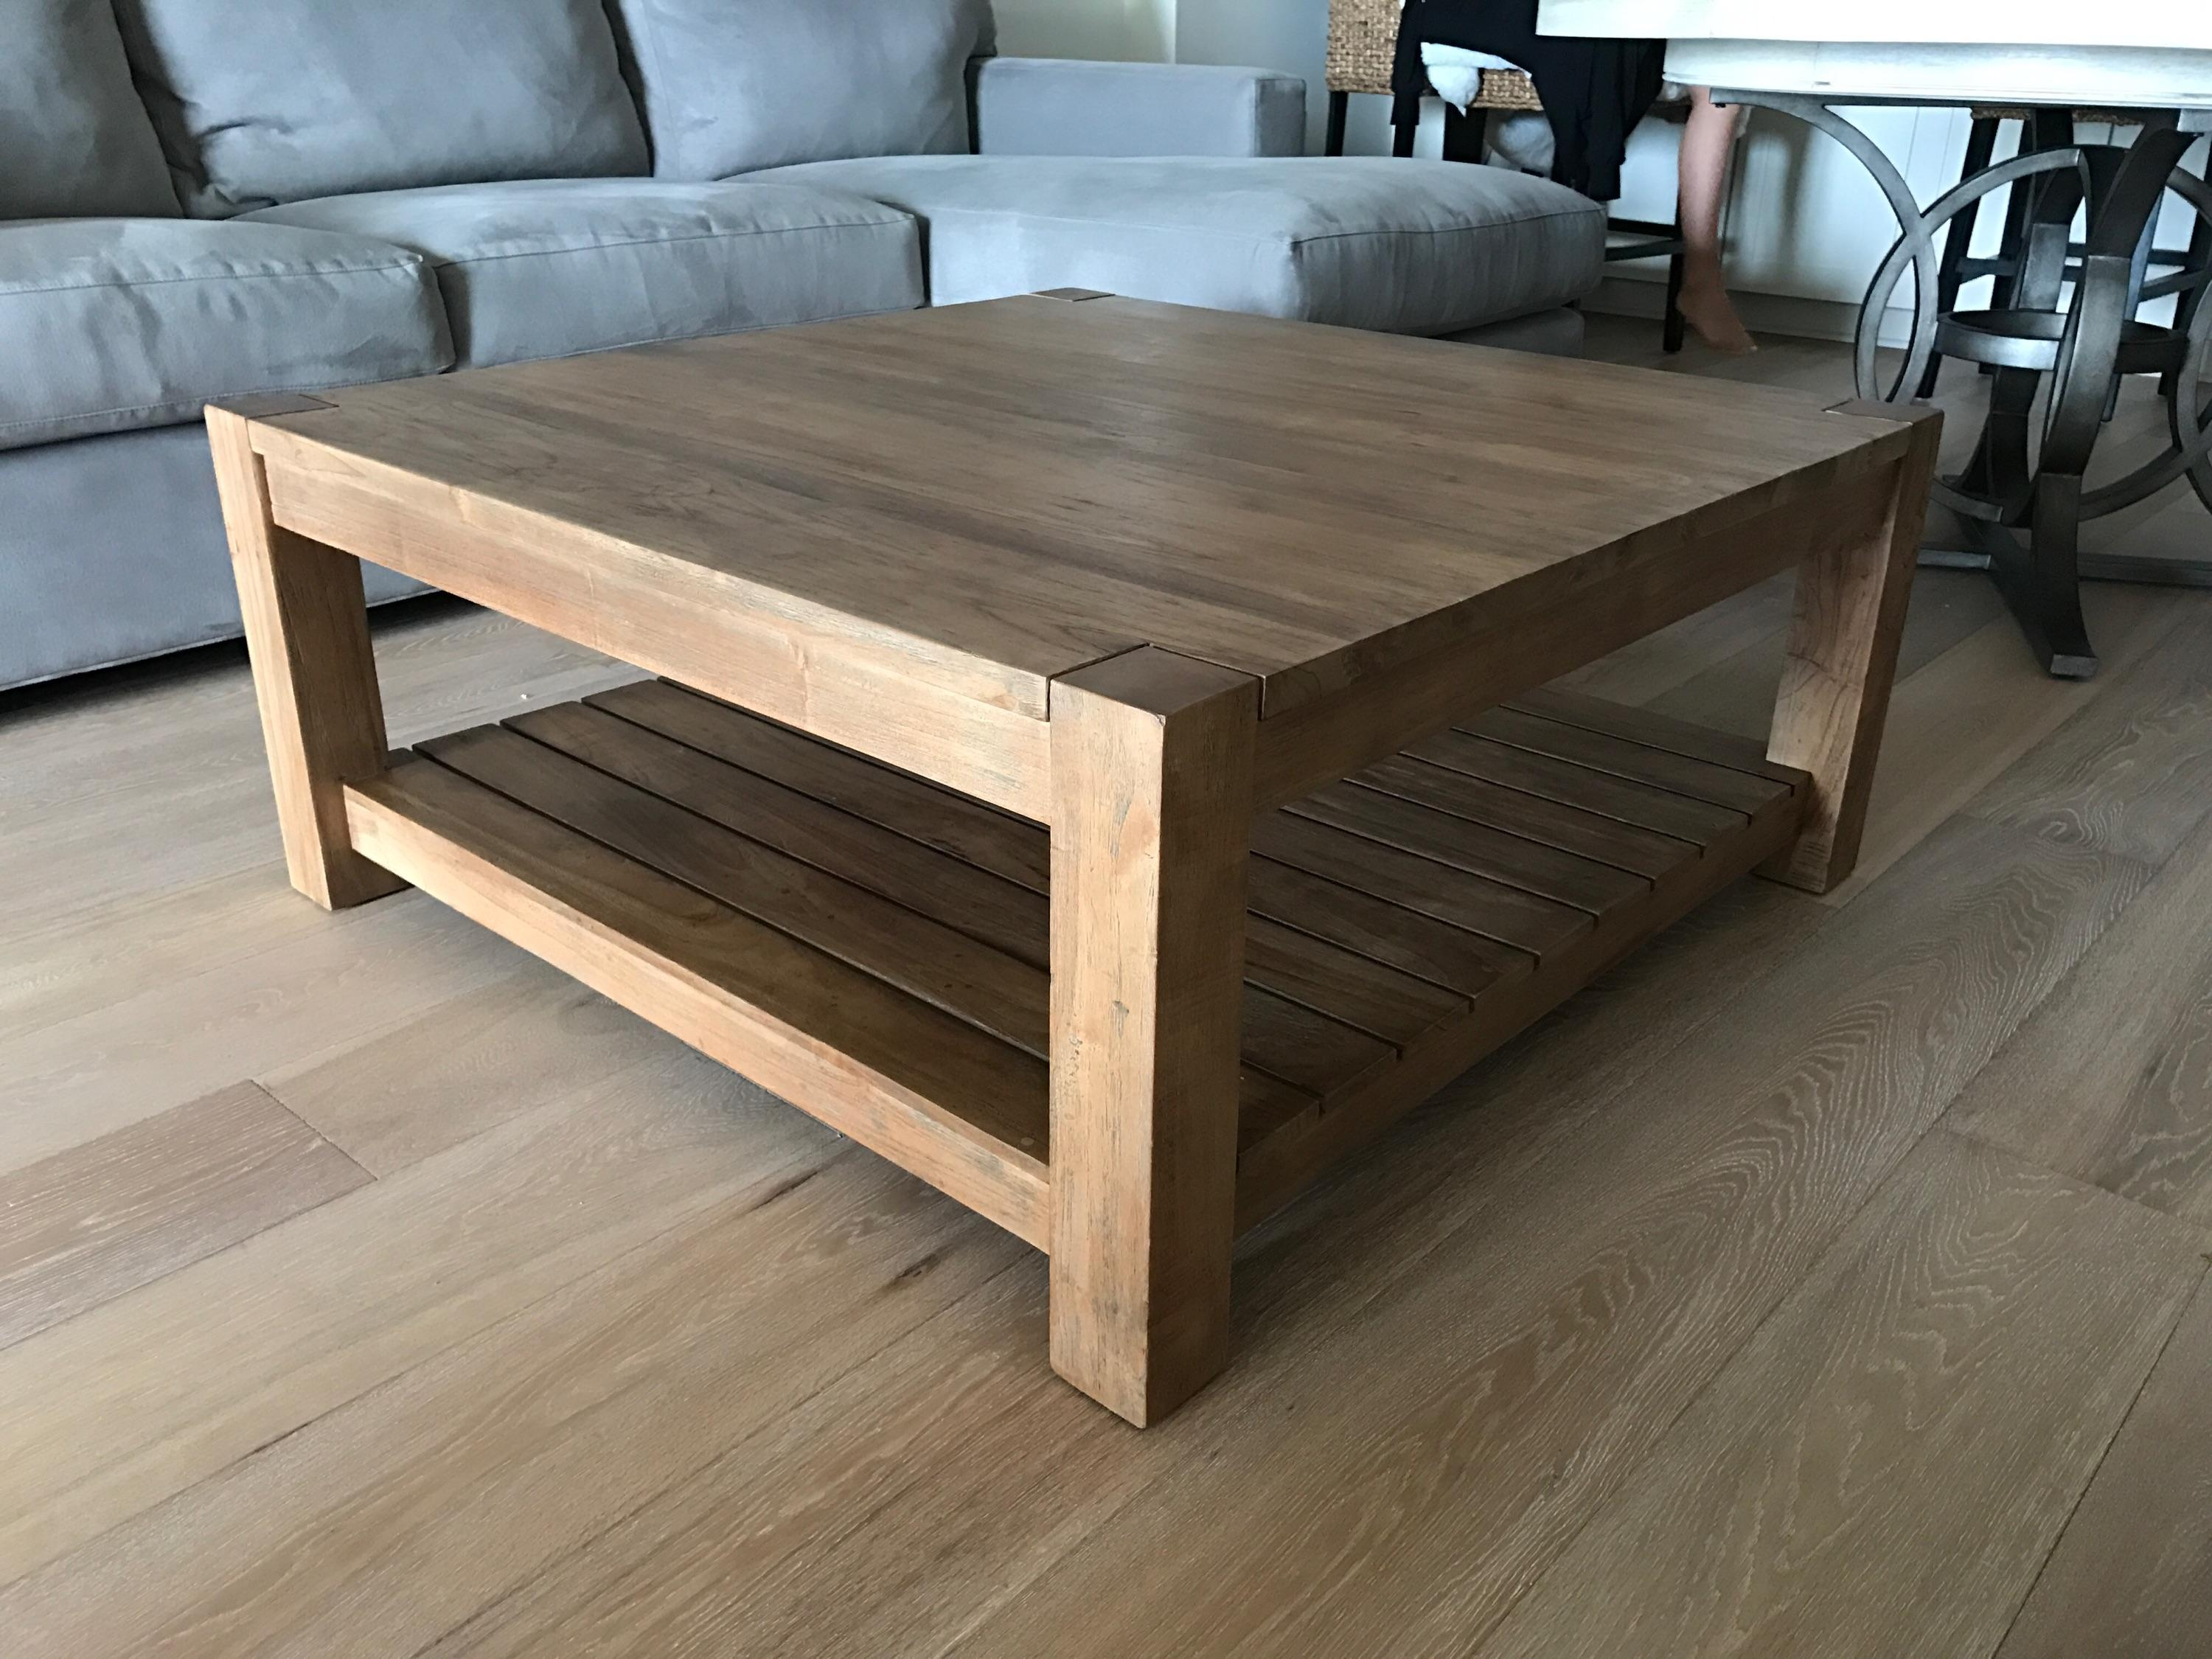 Superior Crate And Barrel Edgewood Square Coffee Table   Image 2 Of 3